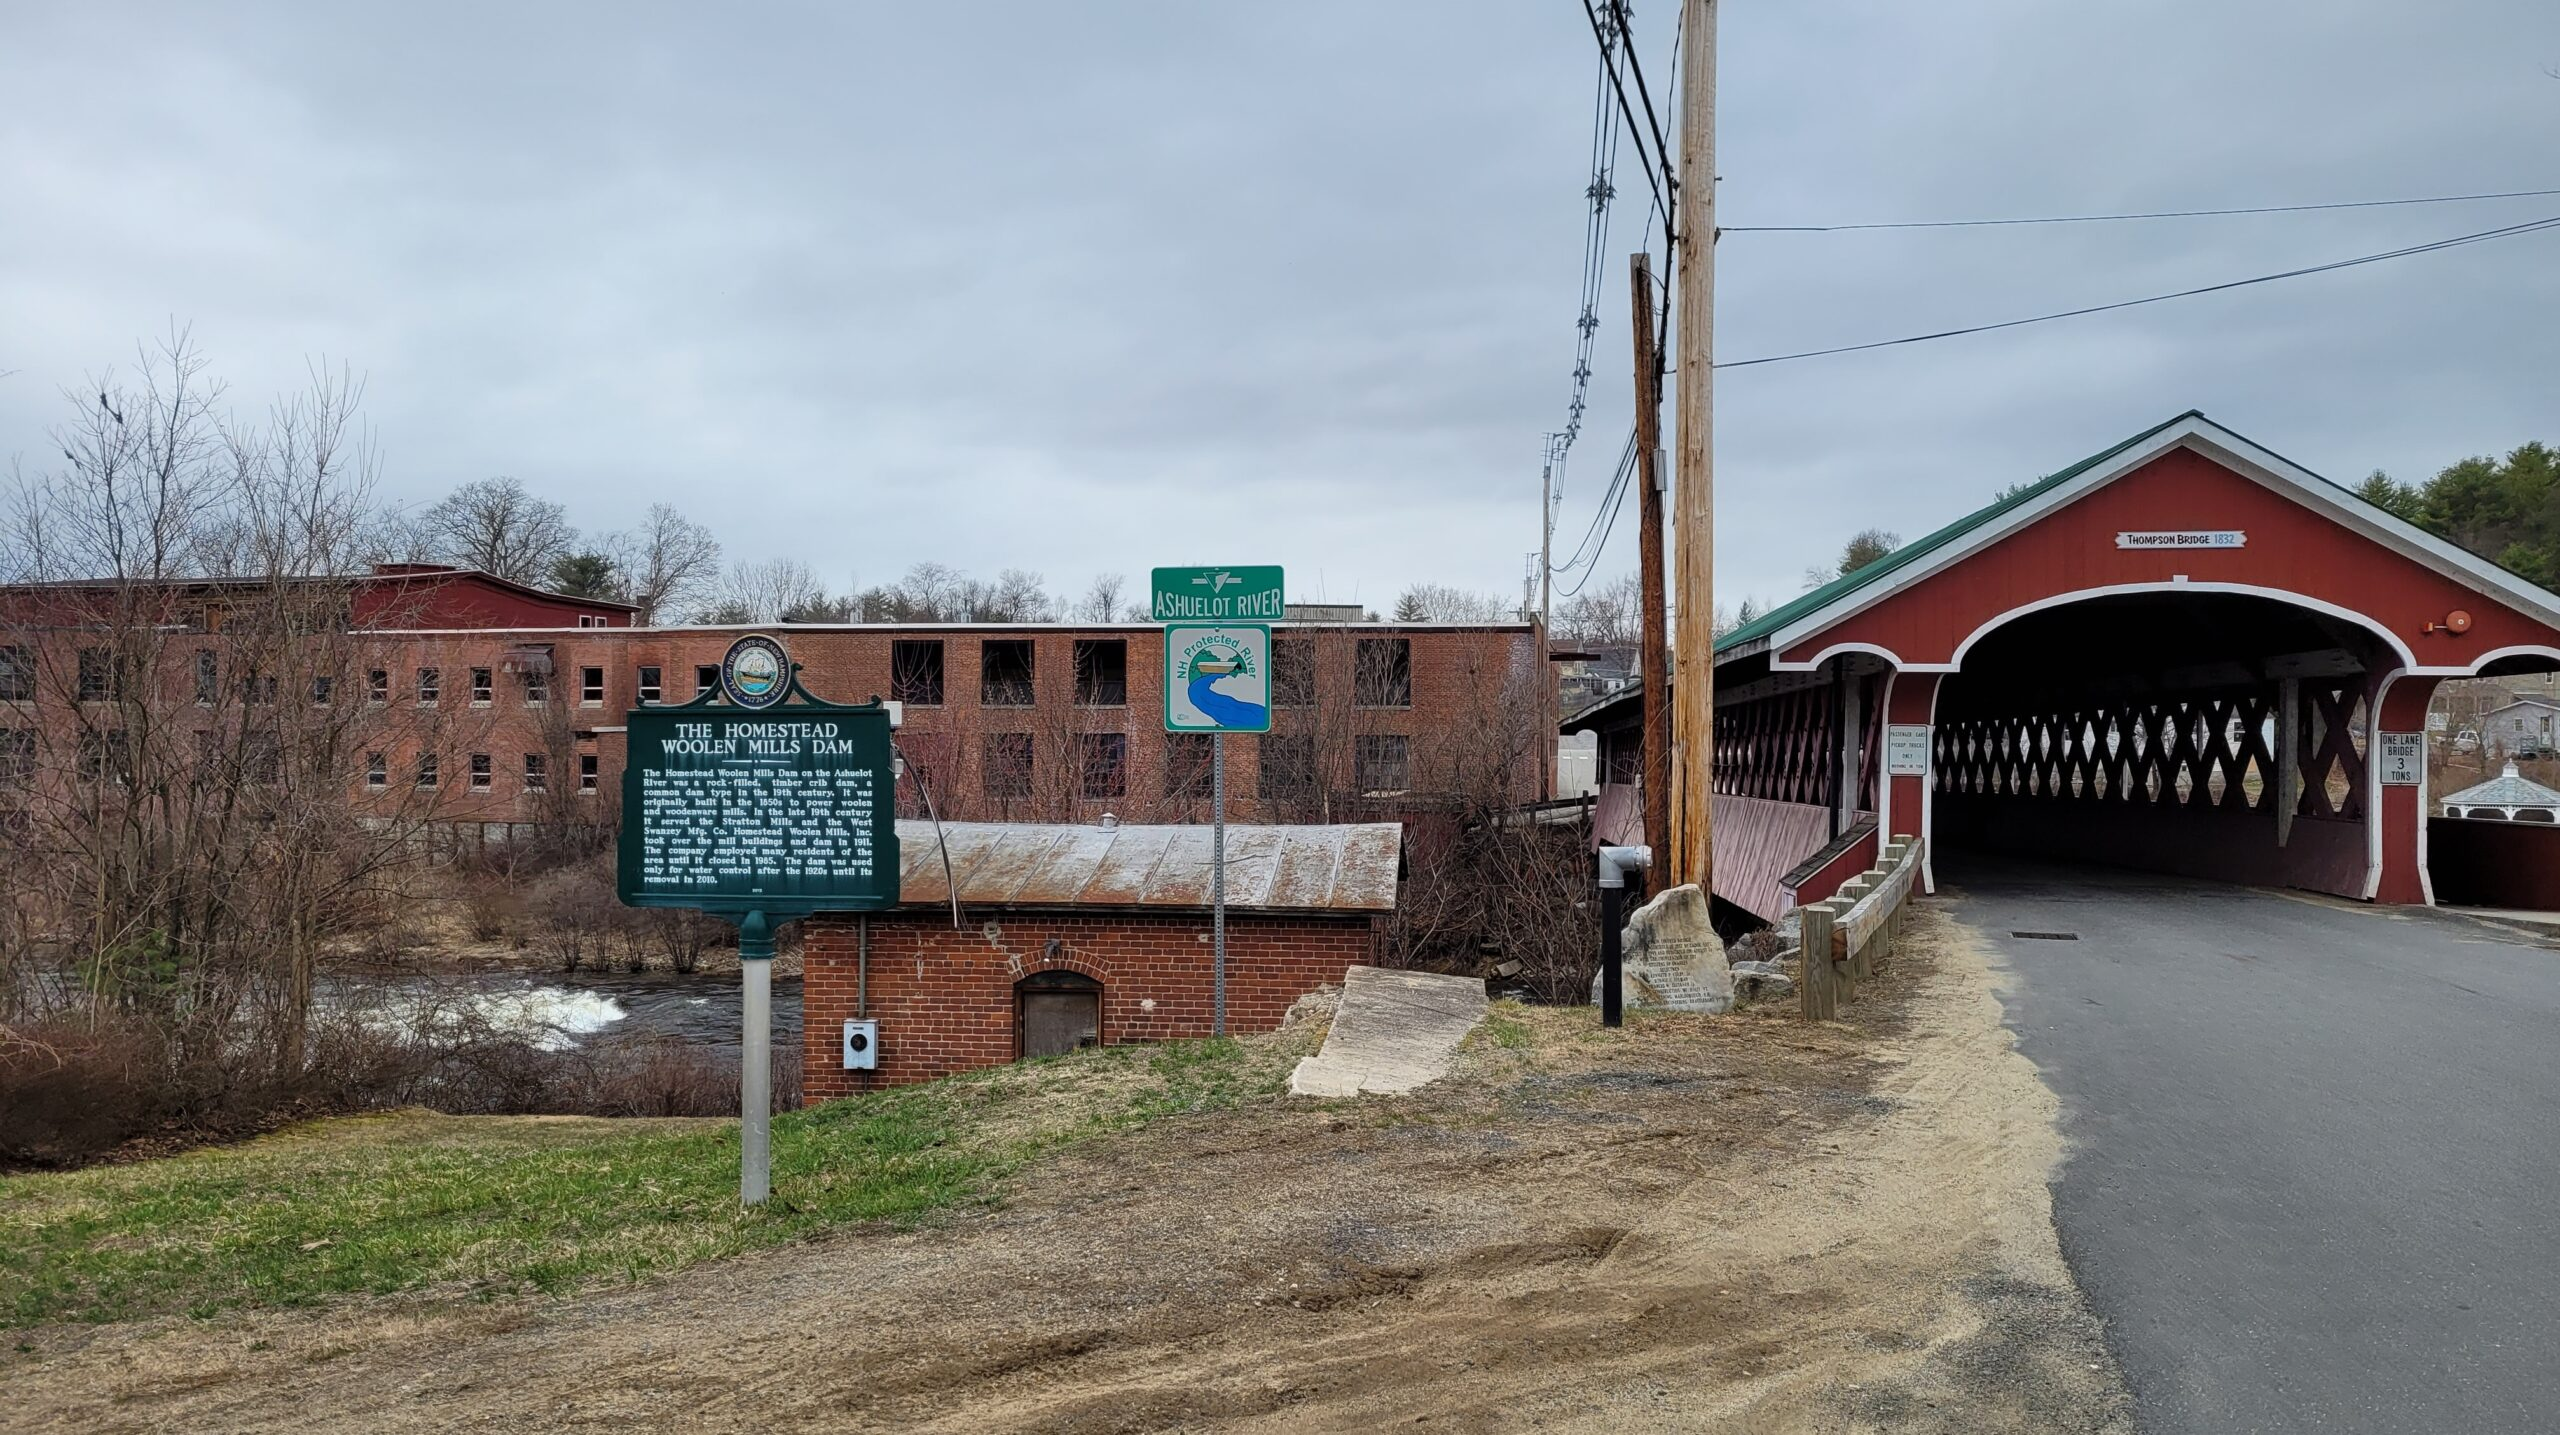 Homestead Mill with Ashuelot River and Thompson Covered Bridge visible